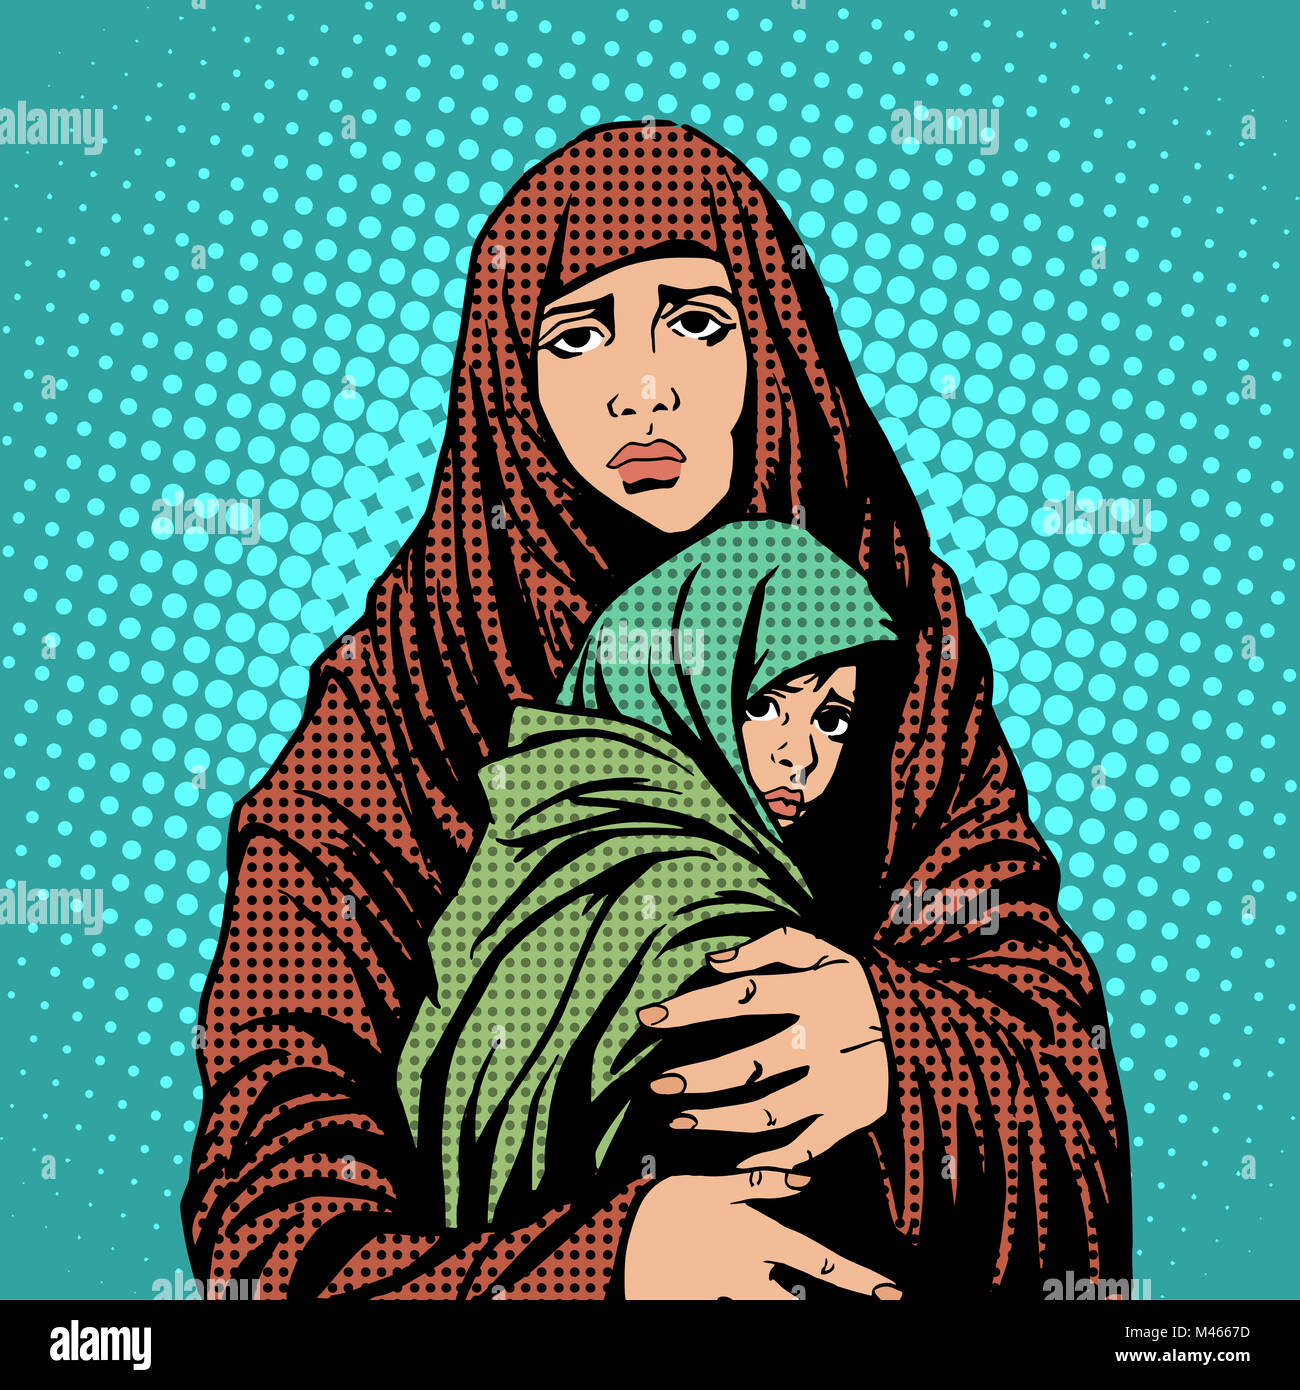 Mother and child refugees foreigners immigrants - Stock Image